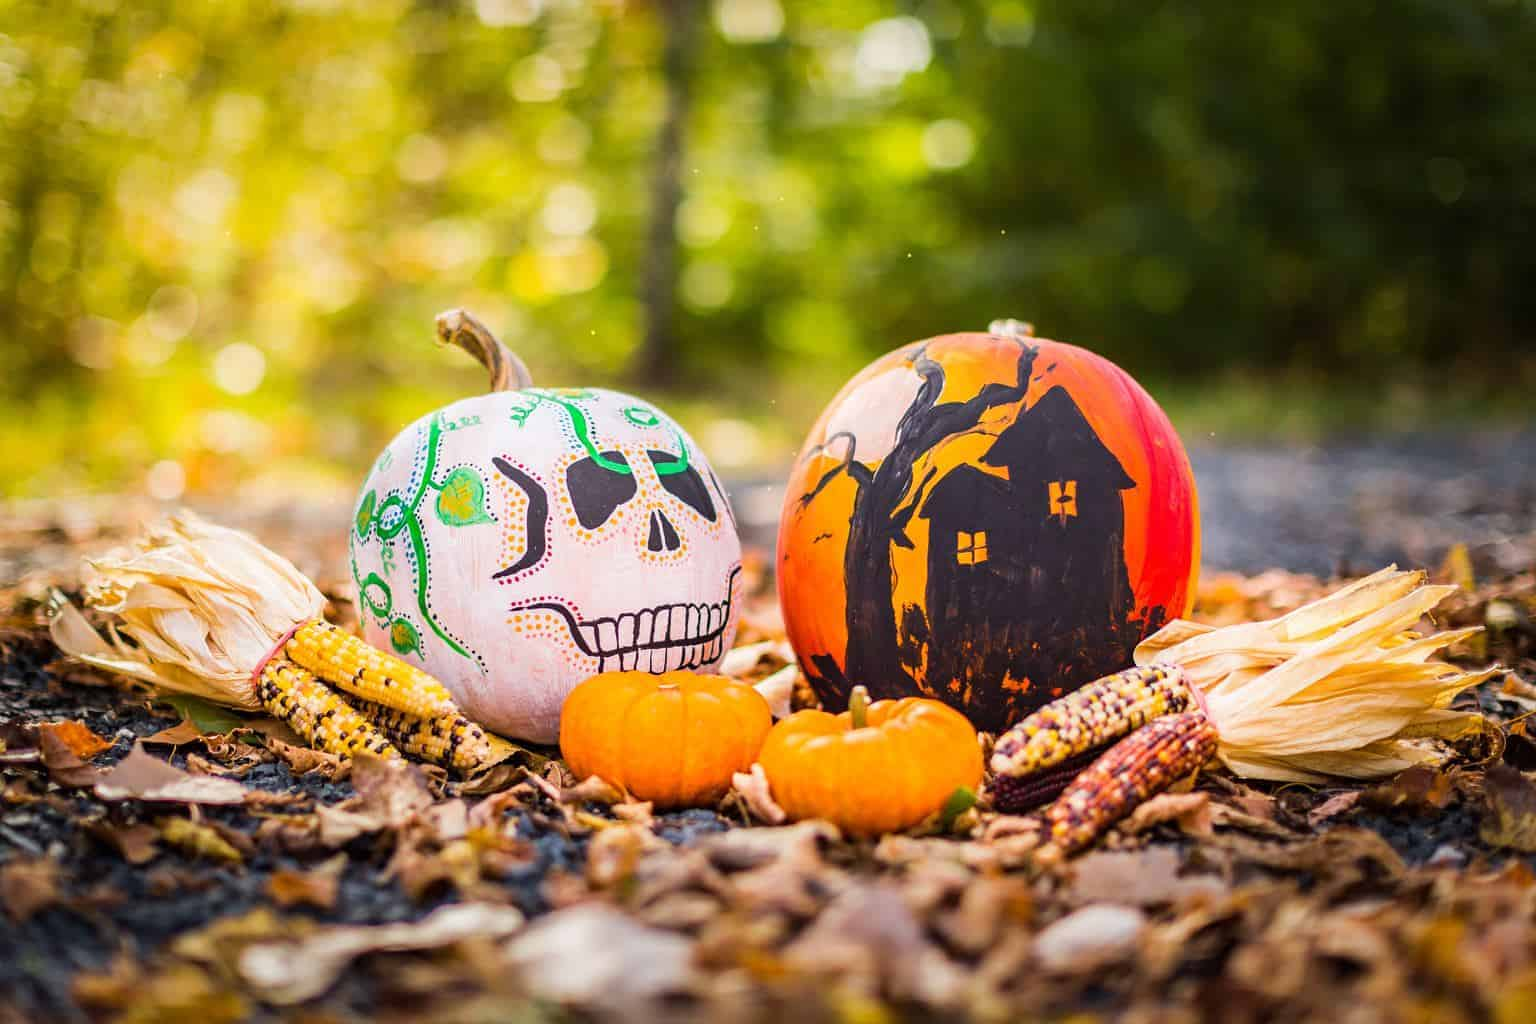 How to use the Stabilo Woody 3-in-1 this Halloween